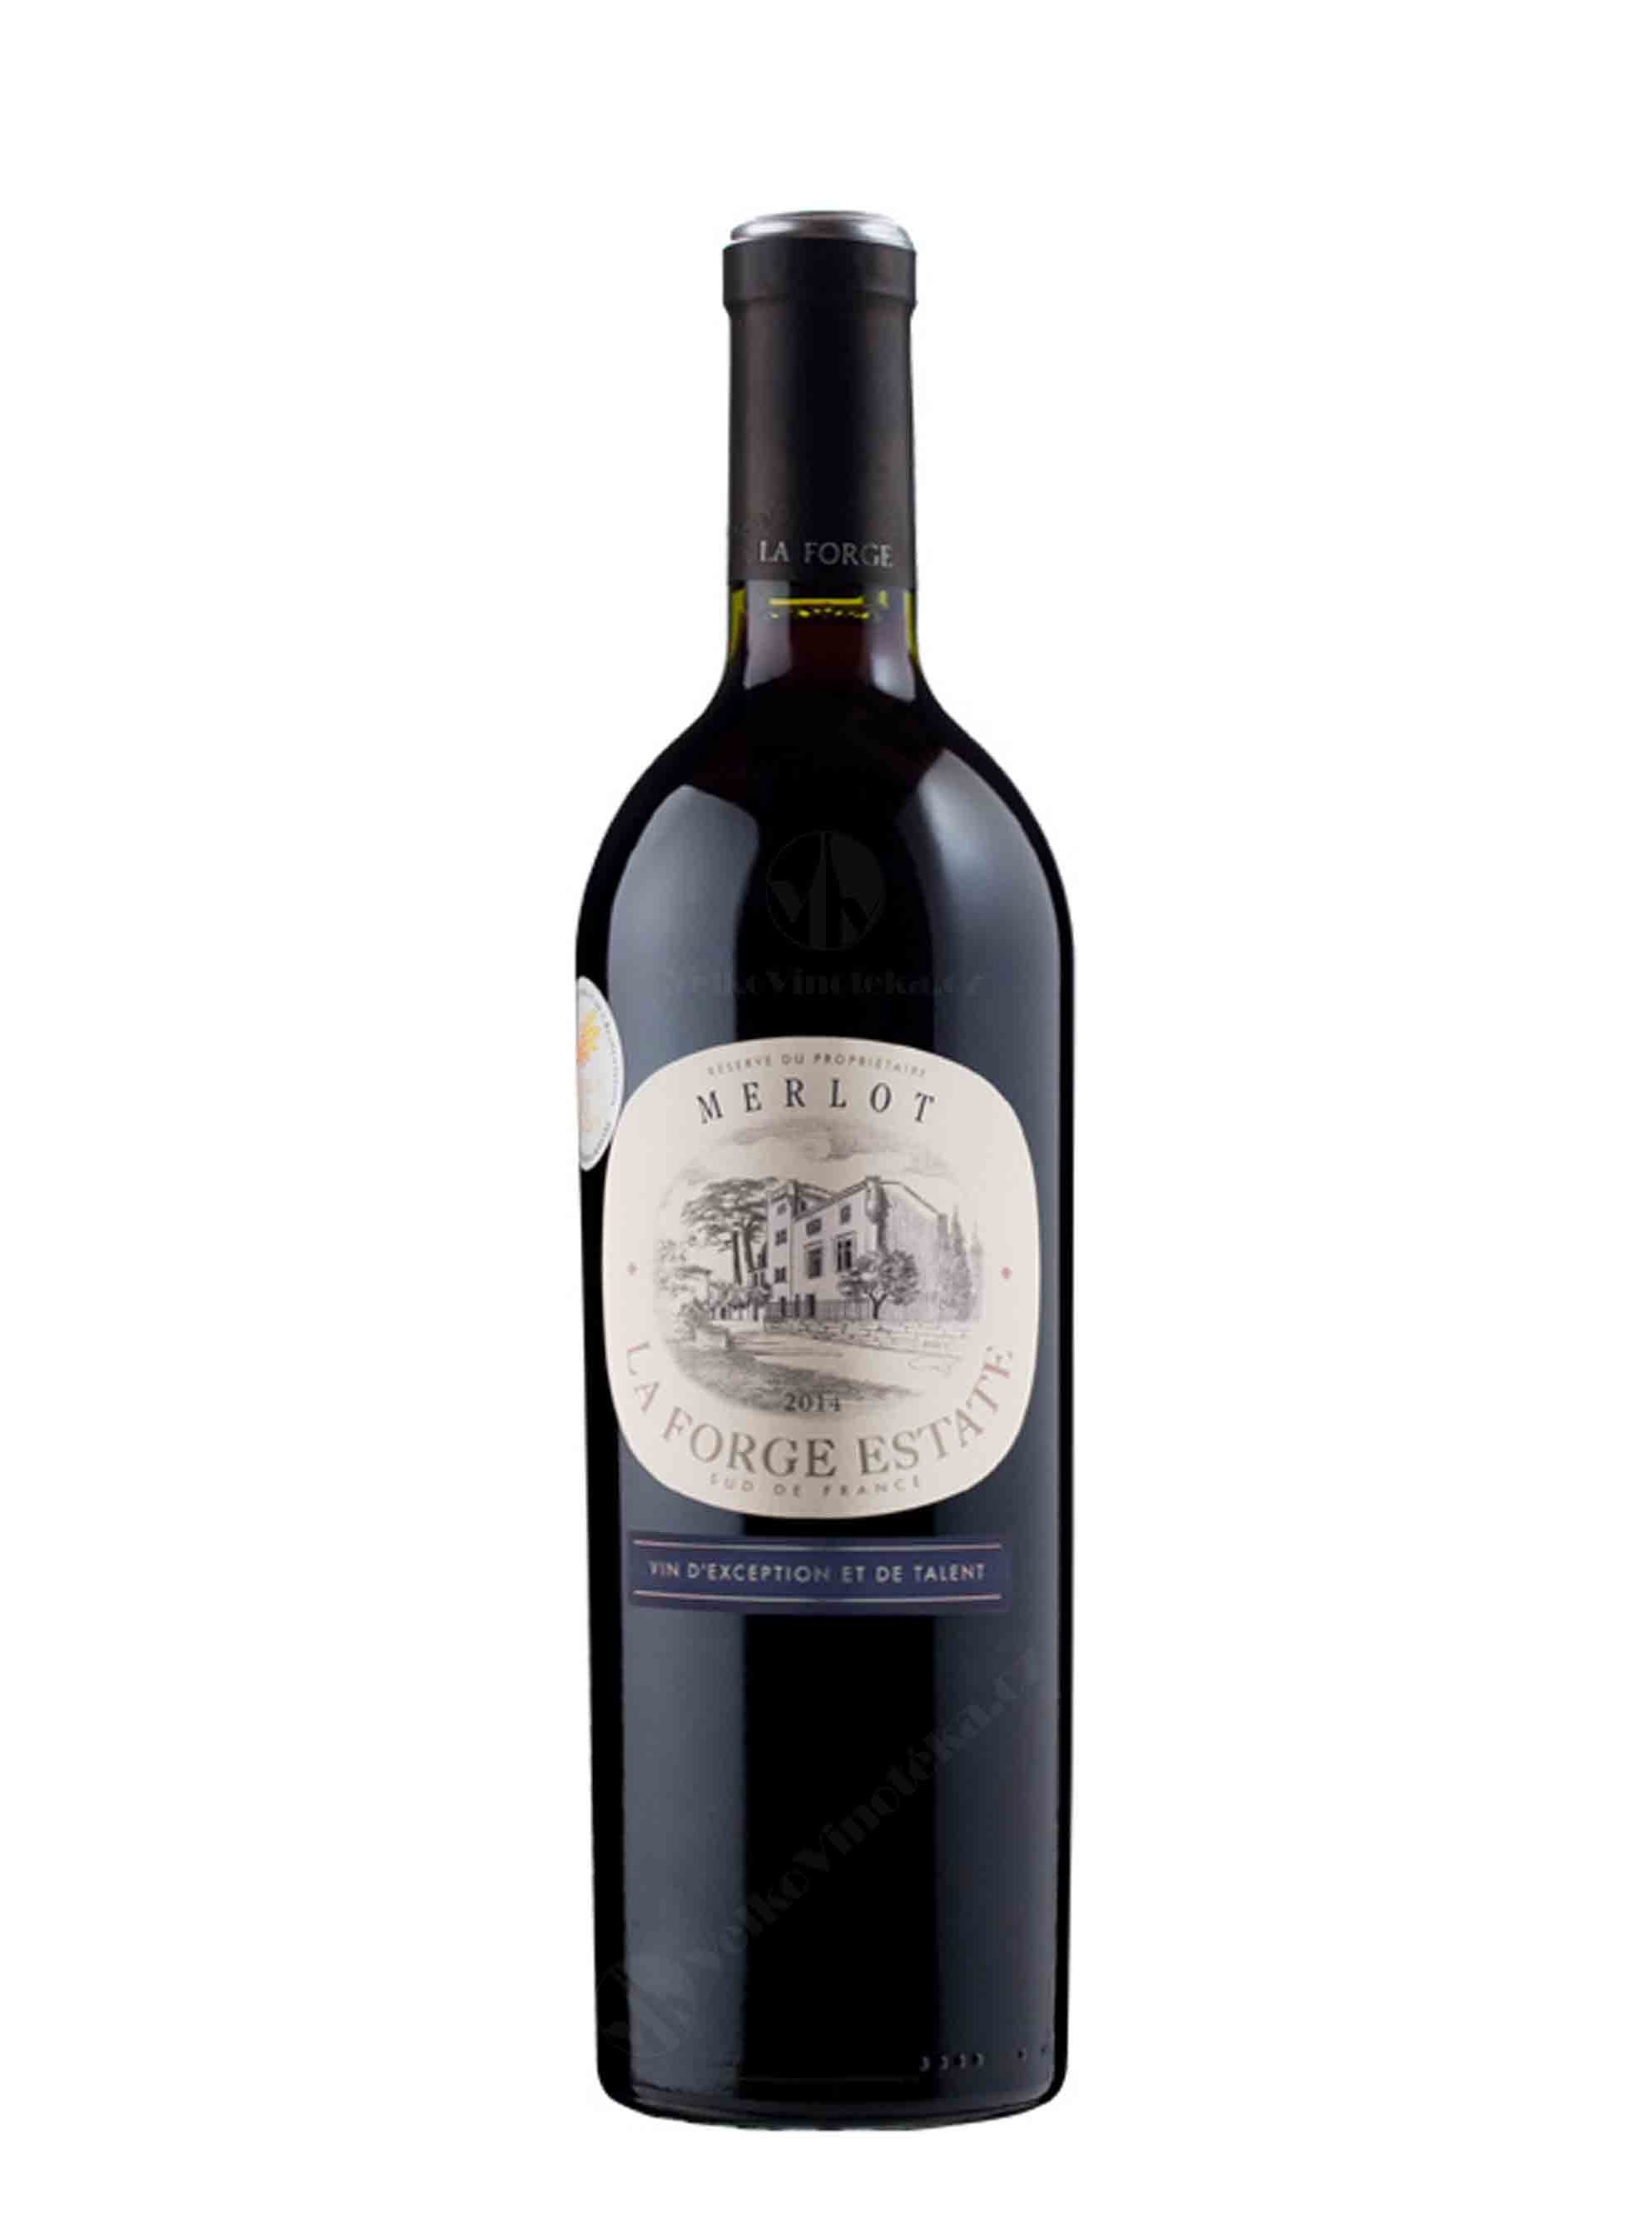 Merlot, La Forge Estate, IGP, 2015, Paul Mas, 0.75 l